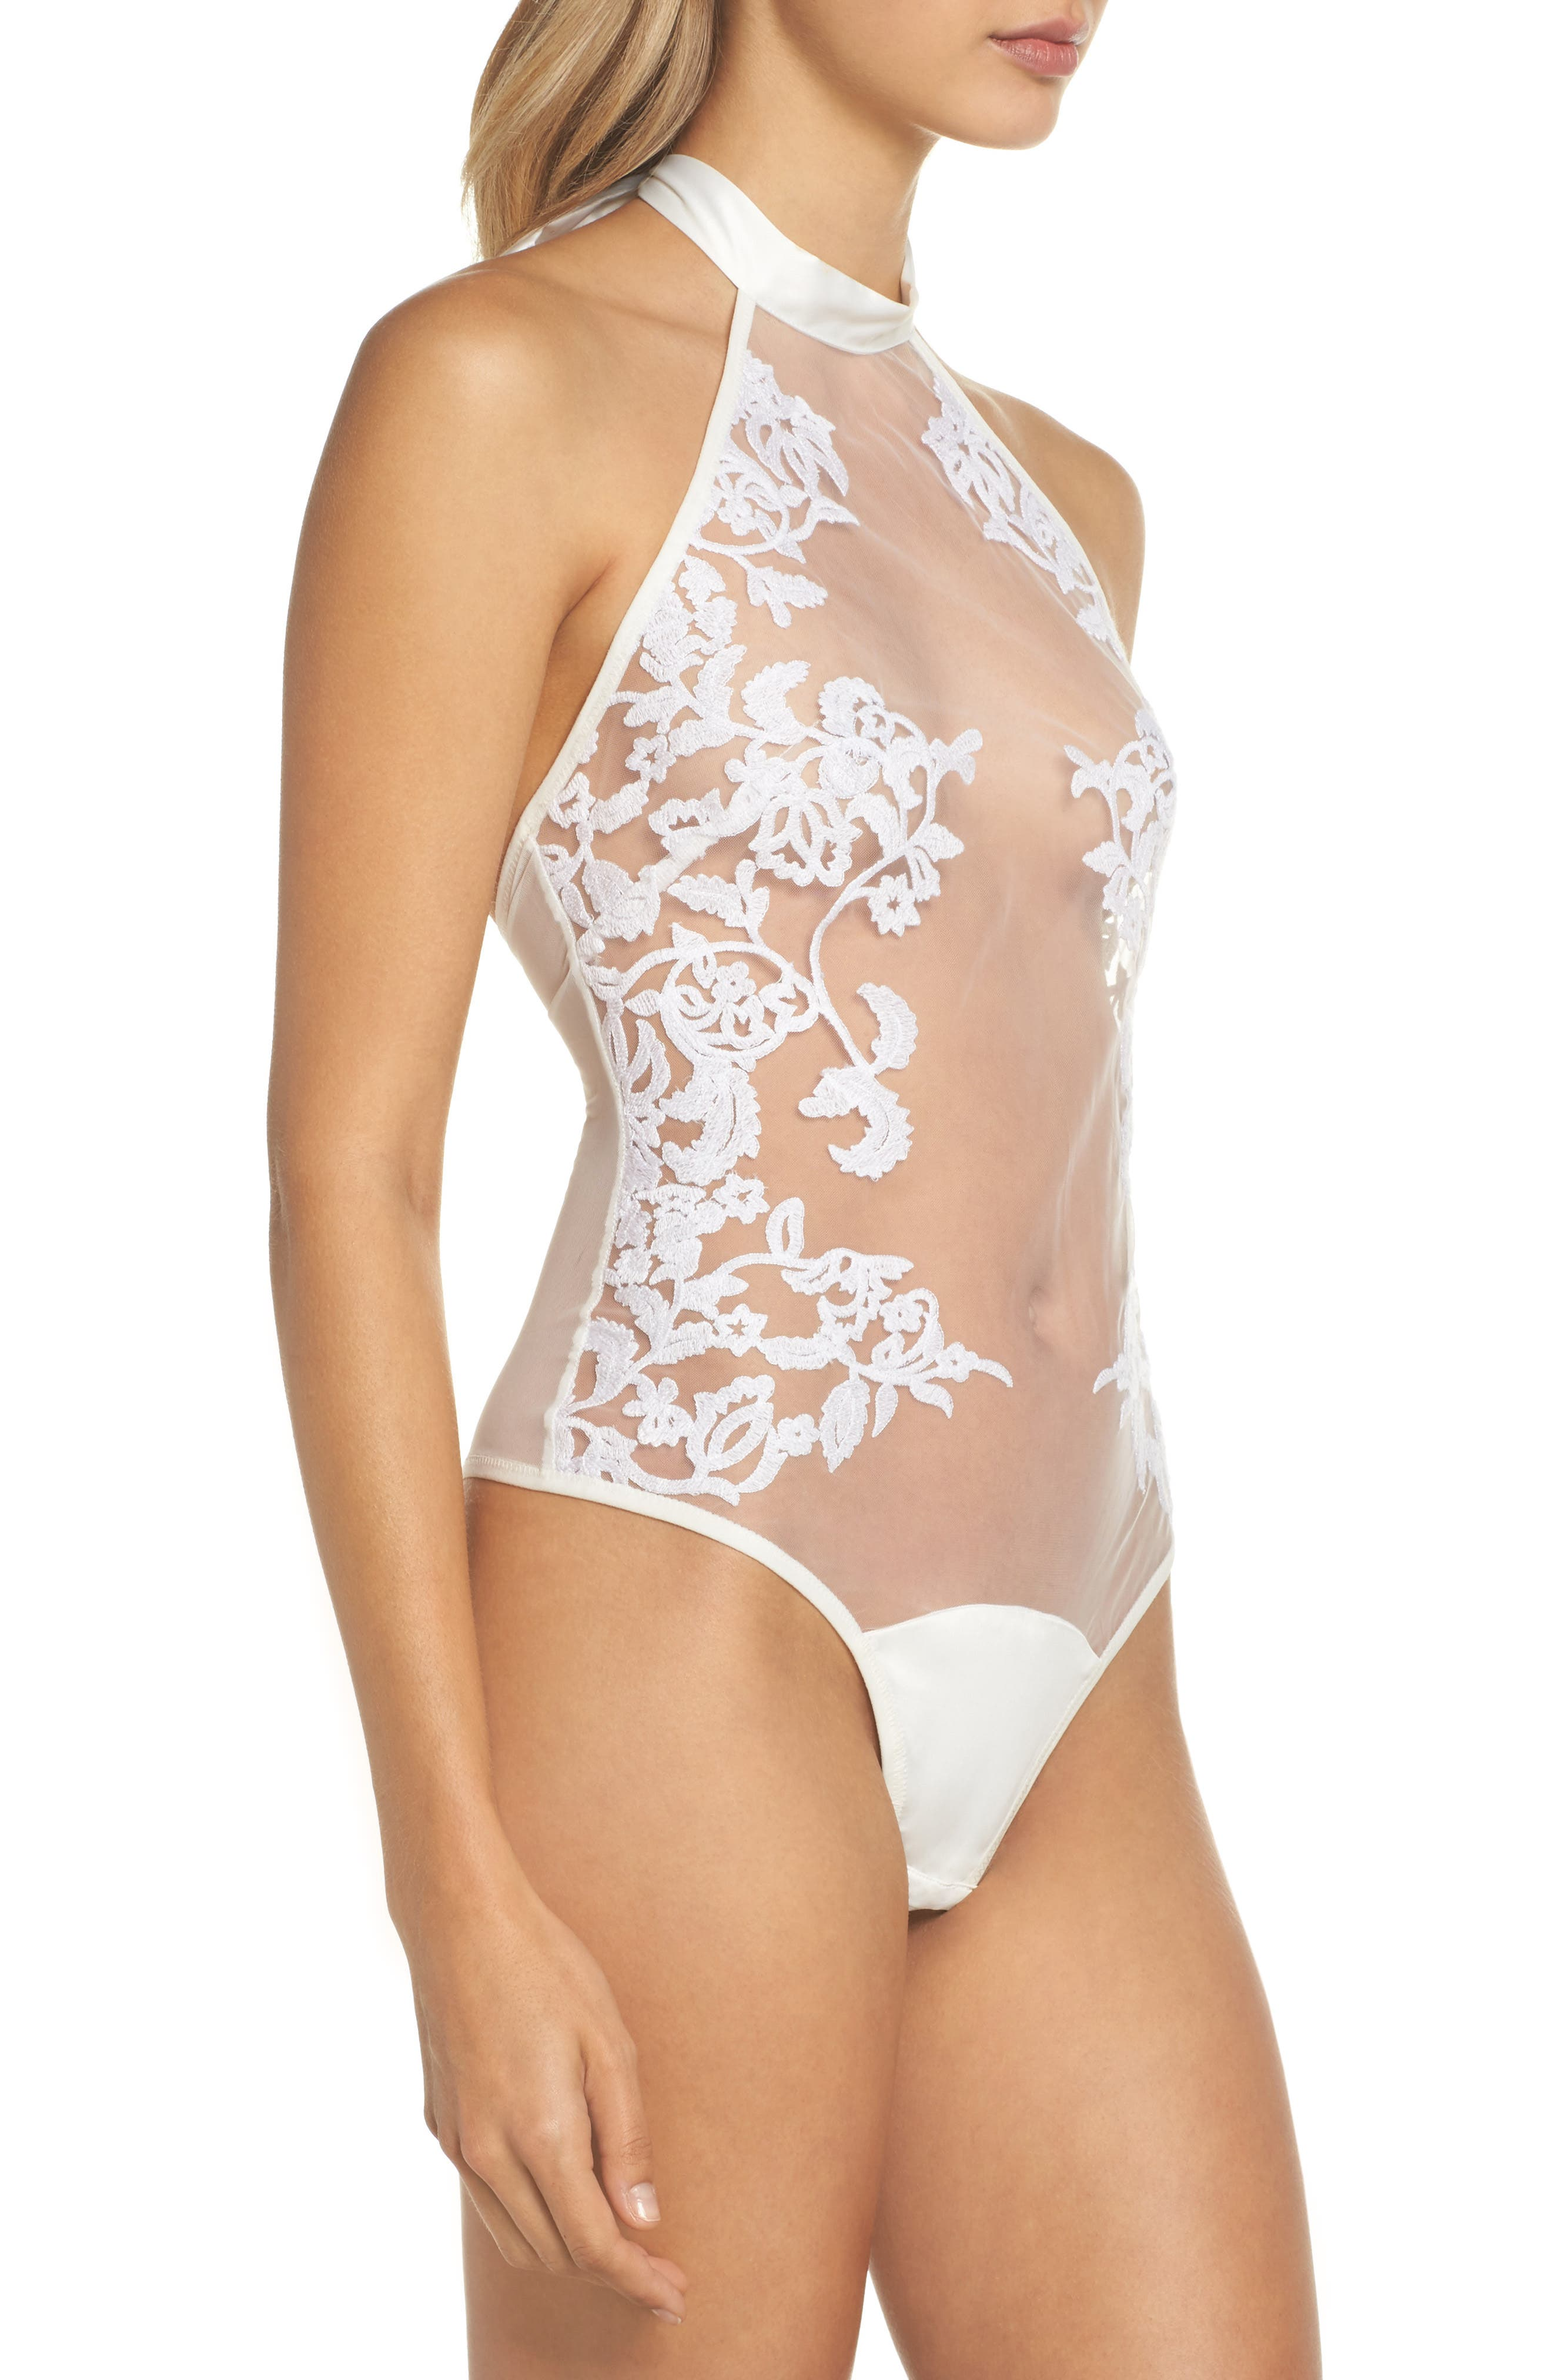 Thistle & Spire Cornelia Bodysuit,                             Alternate thumbnail 3, color,                             Ivory